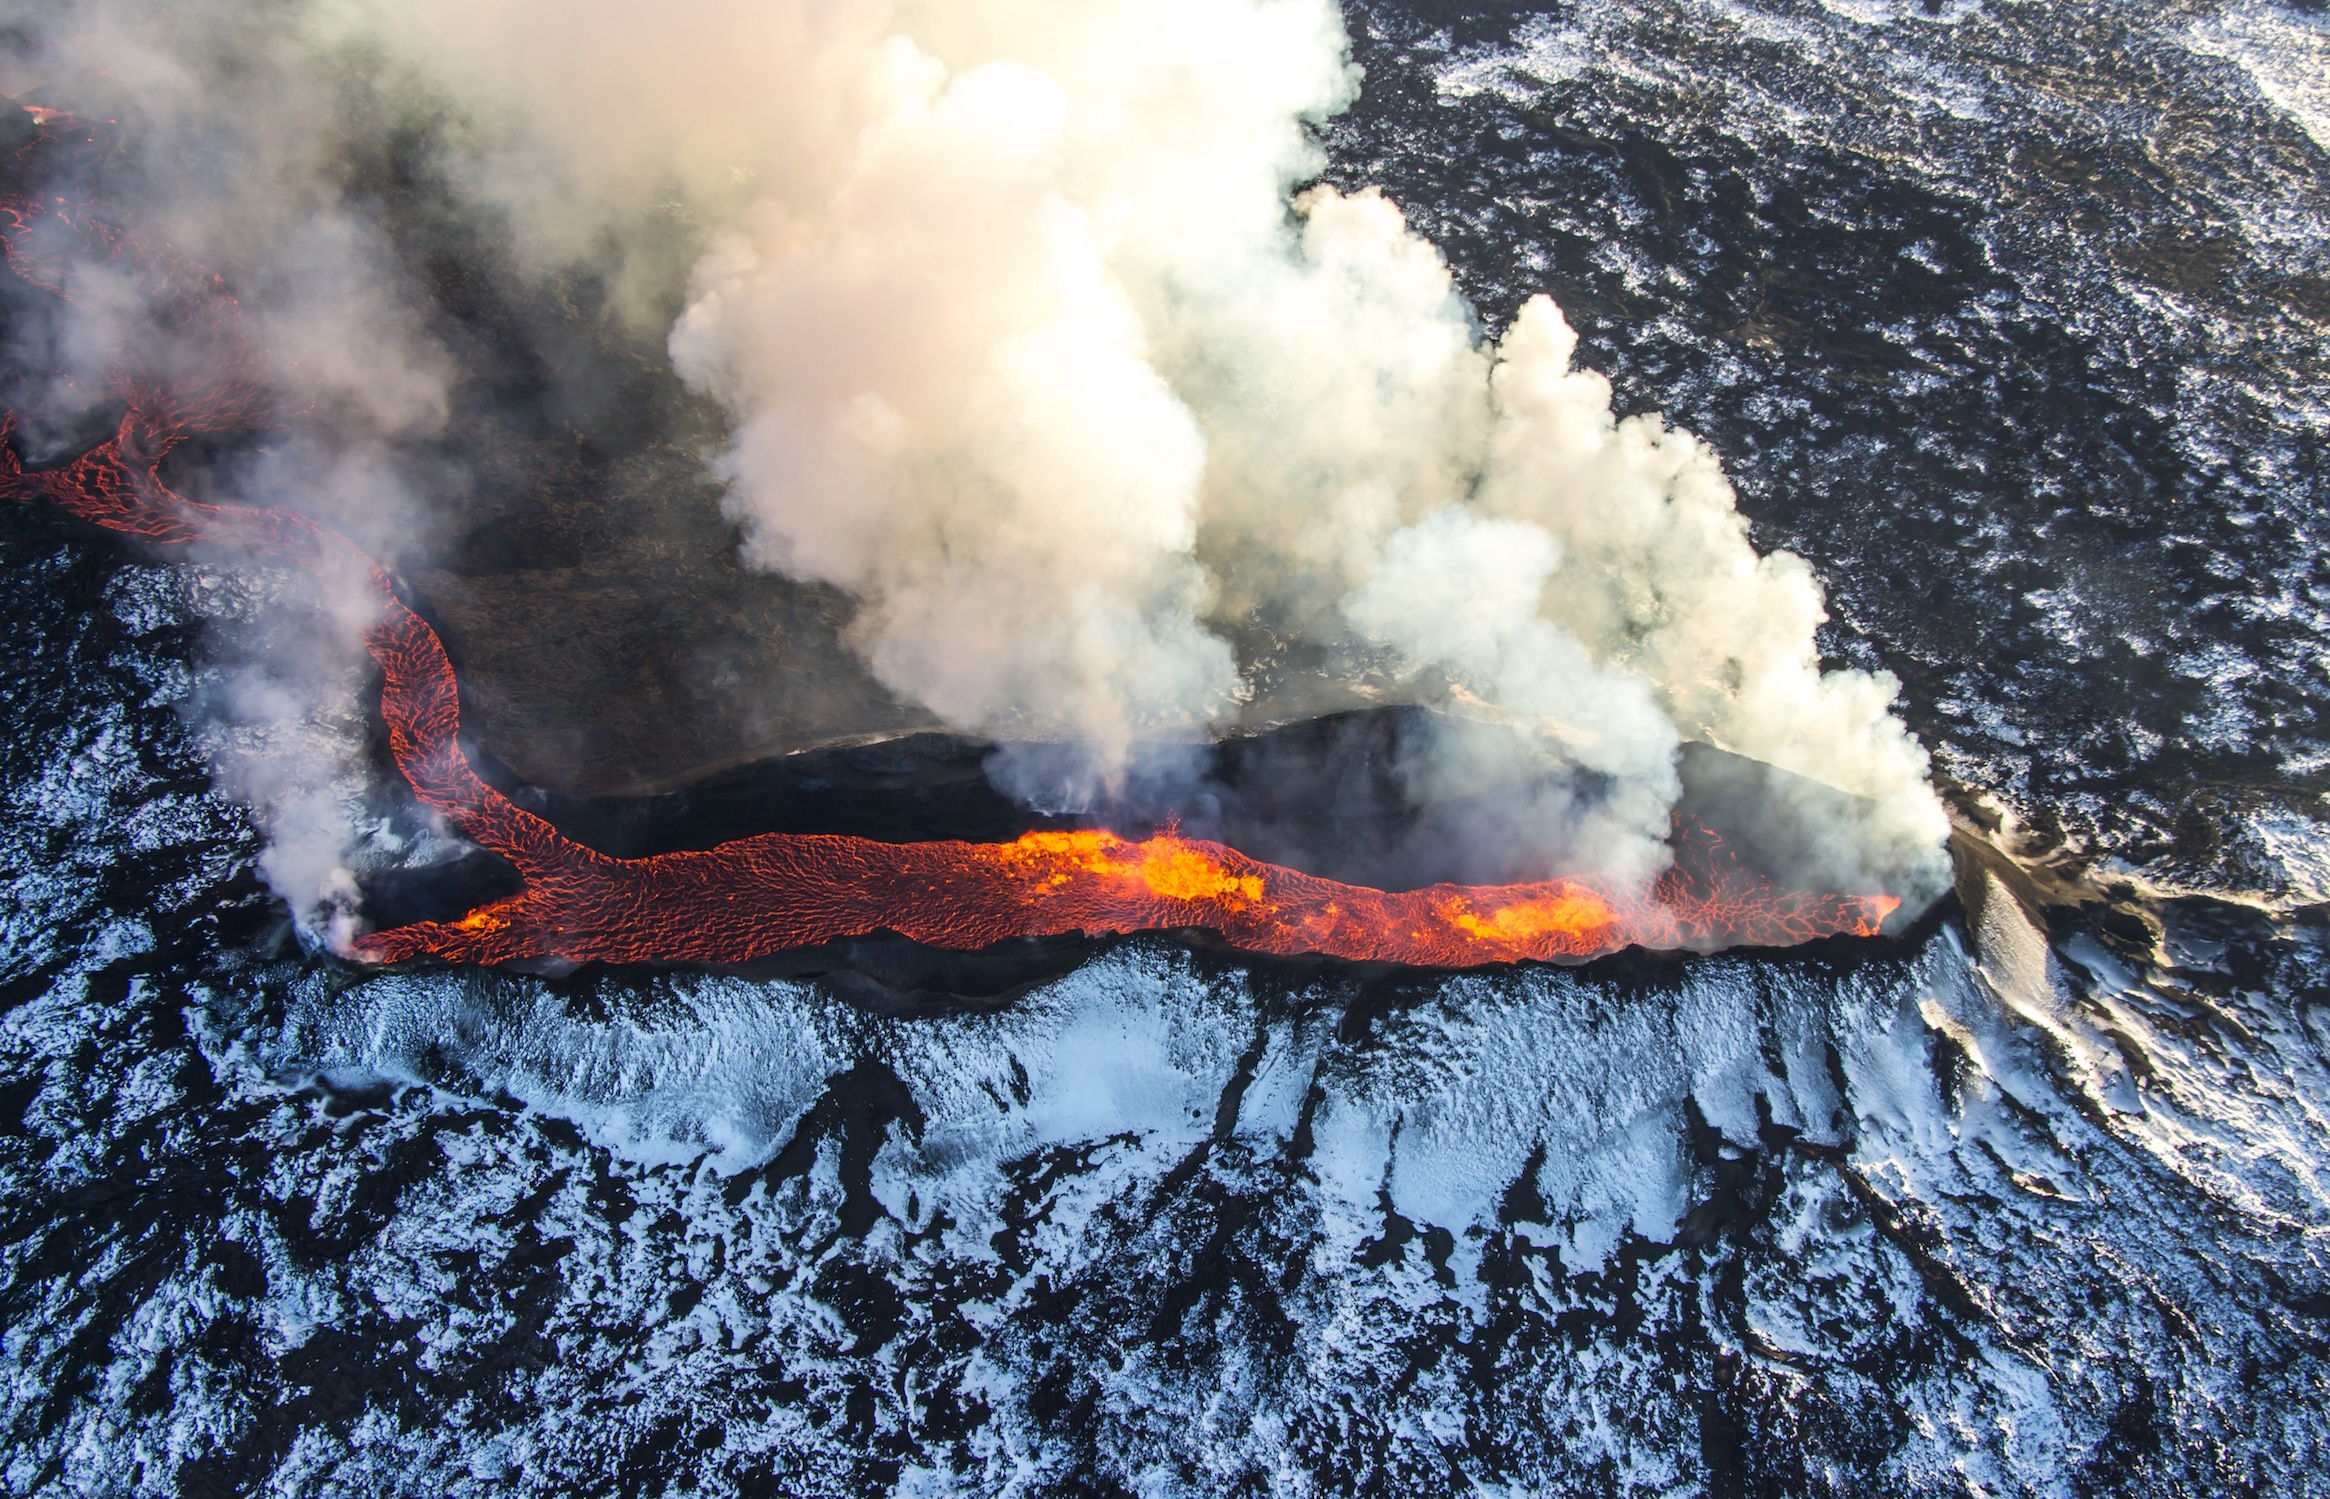 Scientists from The Earth Institute at Columbia University have now found a direct link between volcanic activity and melting ice sheets.